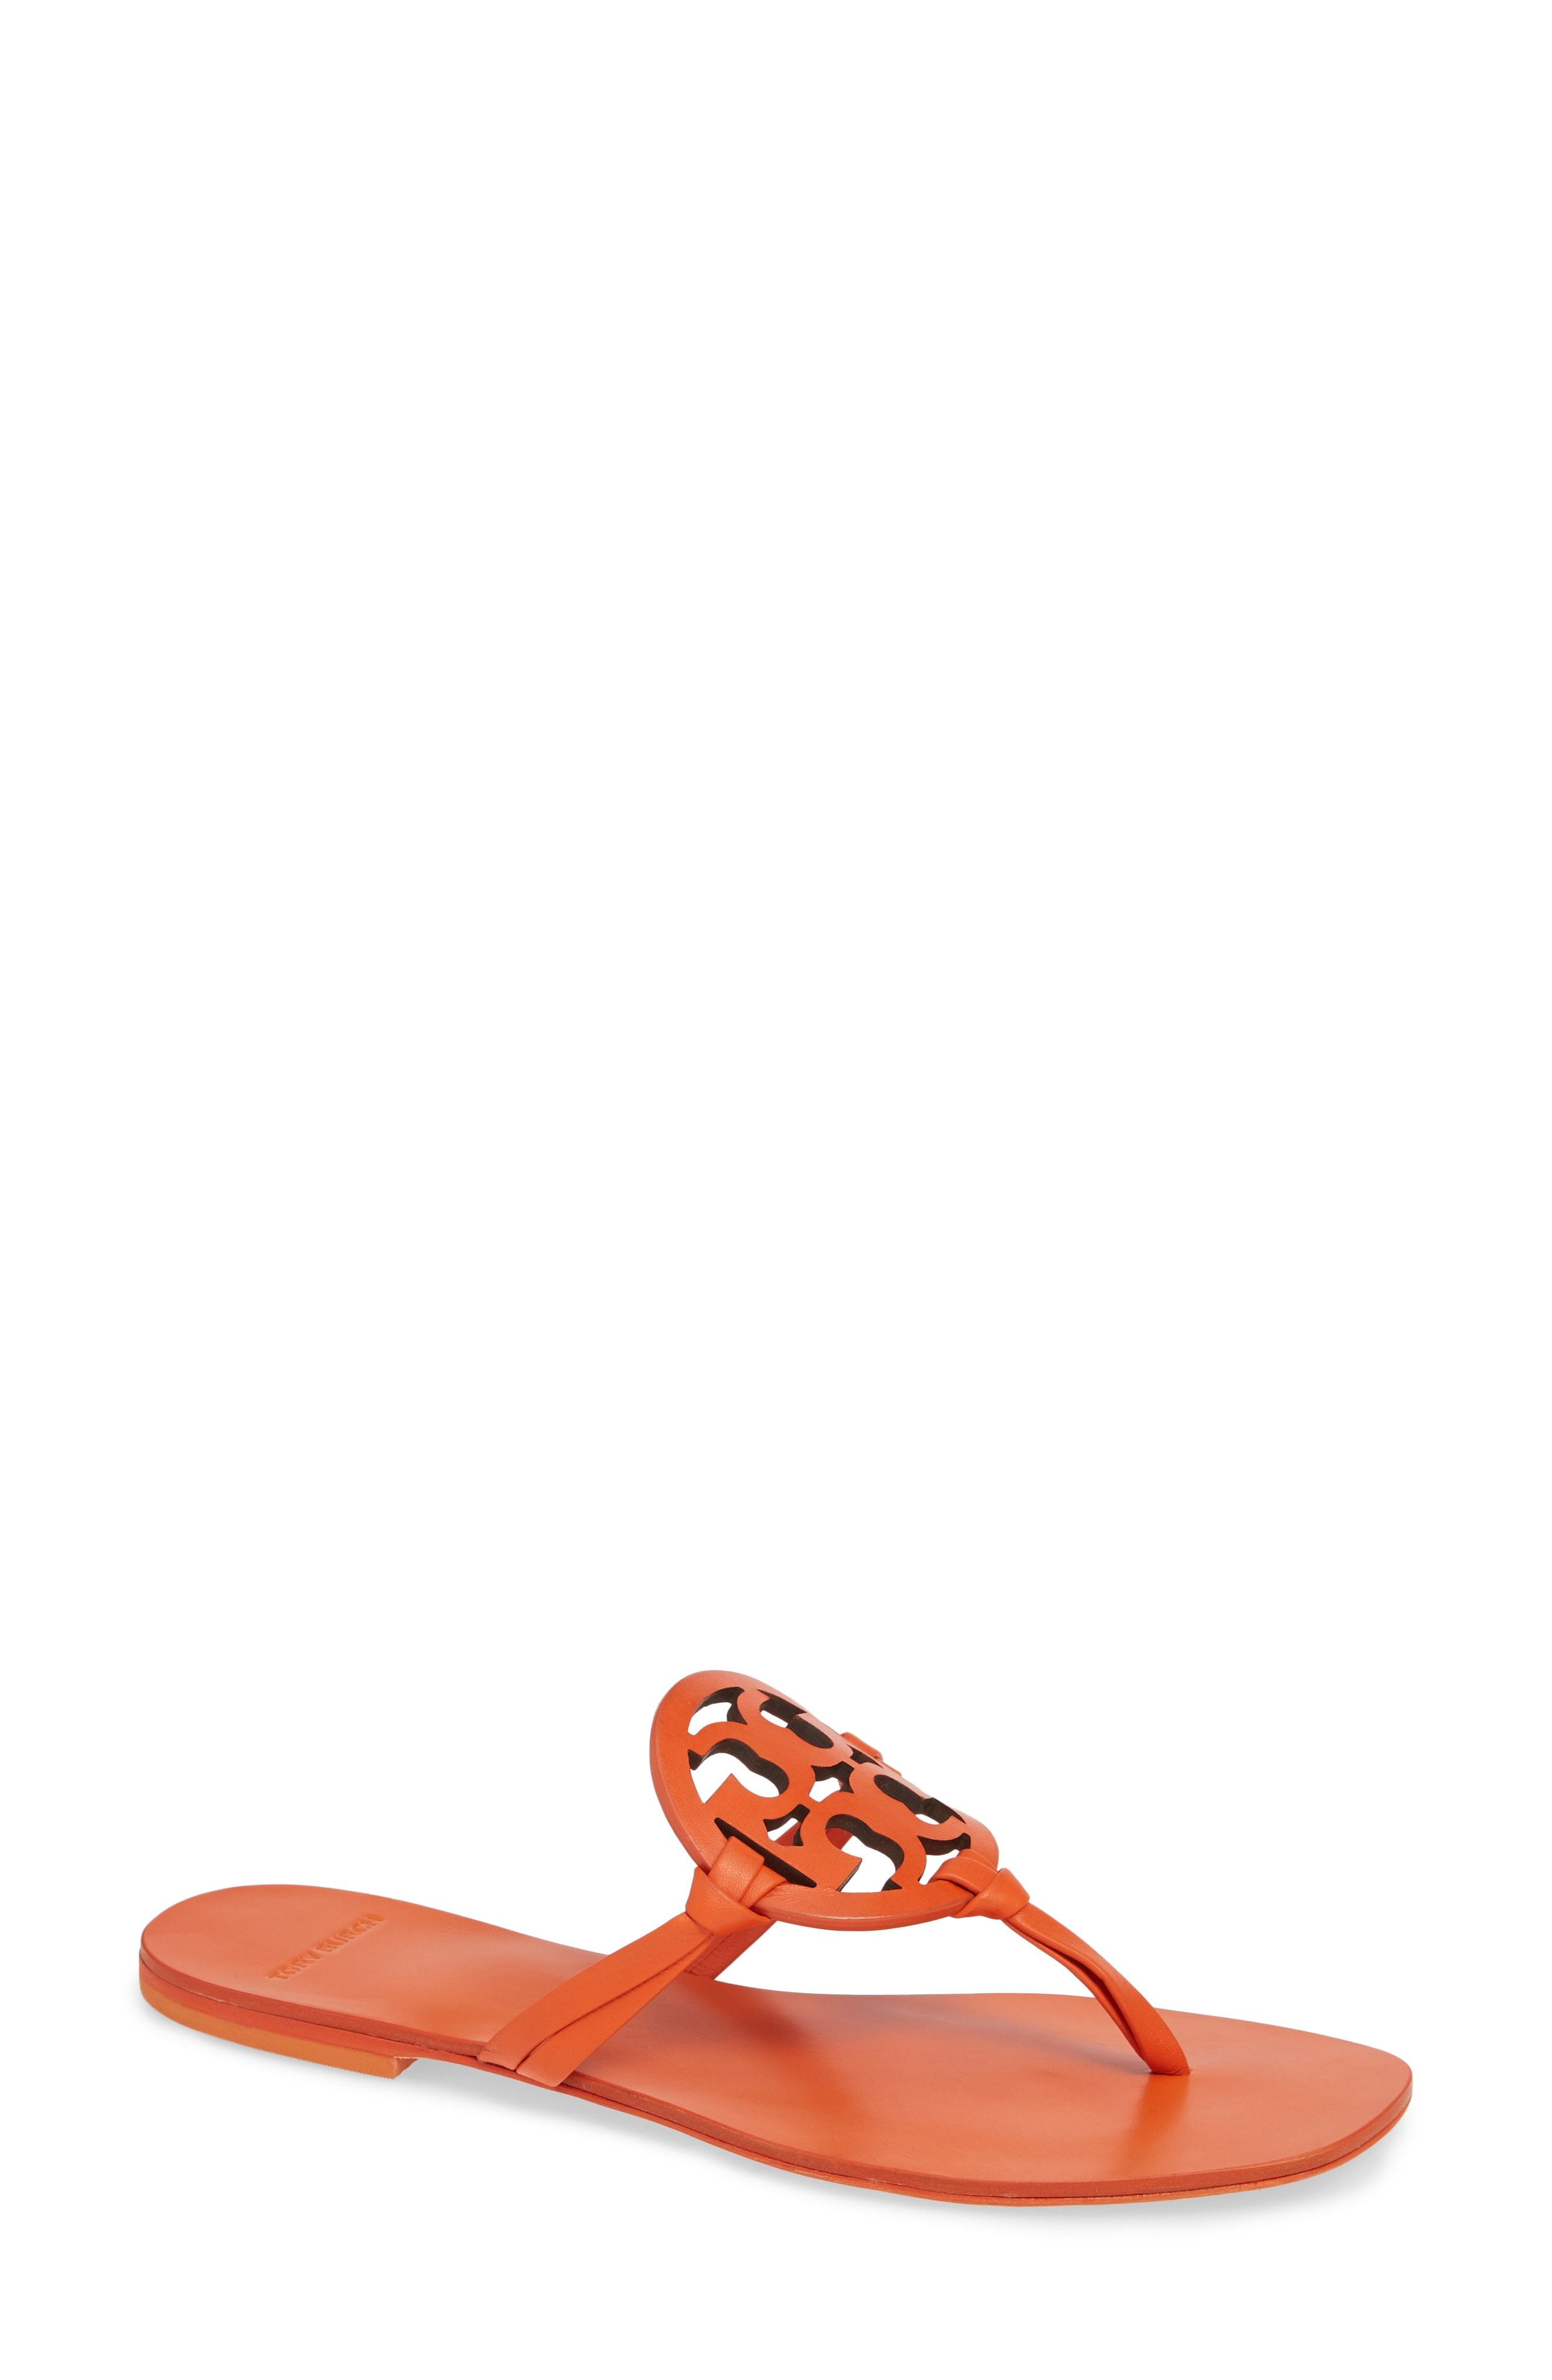 9c08885fbb0 Miller Square Toe Thong Sandal. Orange Leather Thong Sandals by Tory Burch